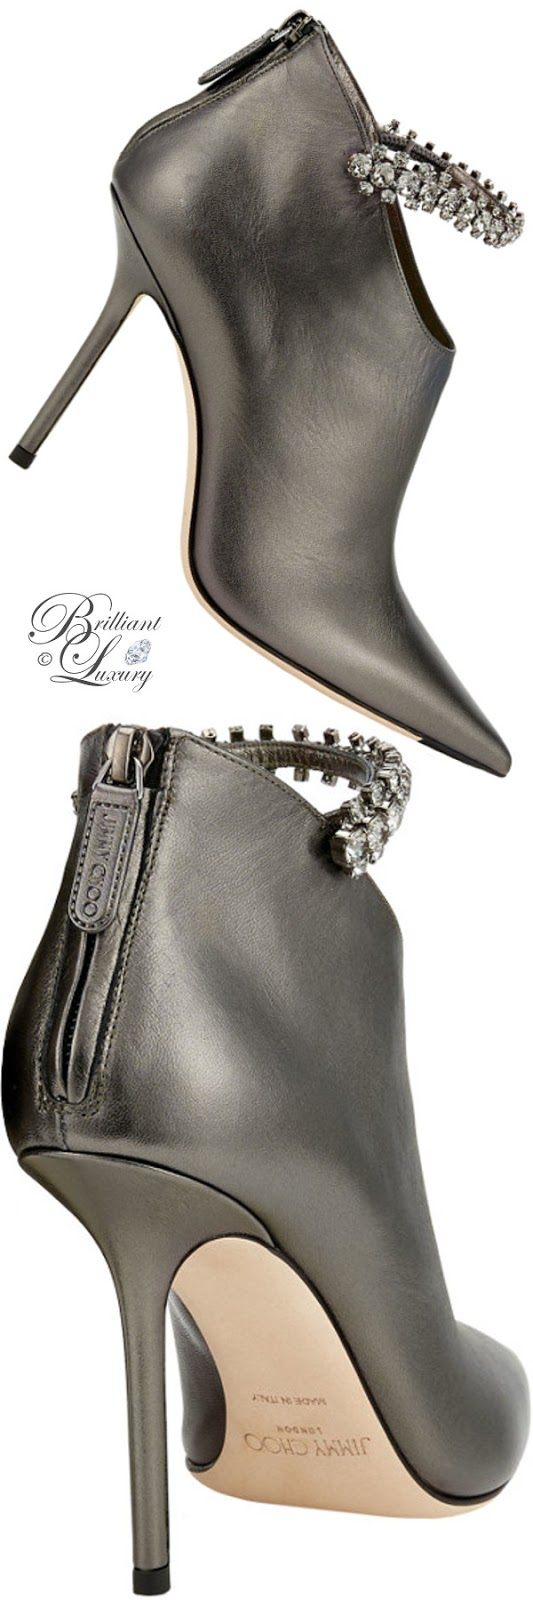 optimized pins Brilliant Luxury ♦ Jimmy Choo Blaize Anthracite Metallic Nappa Leather Booties with Crystal Strap #brilliantluxury